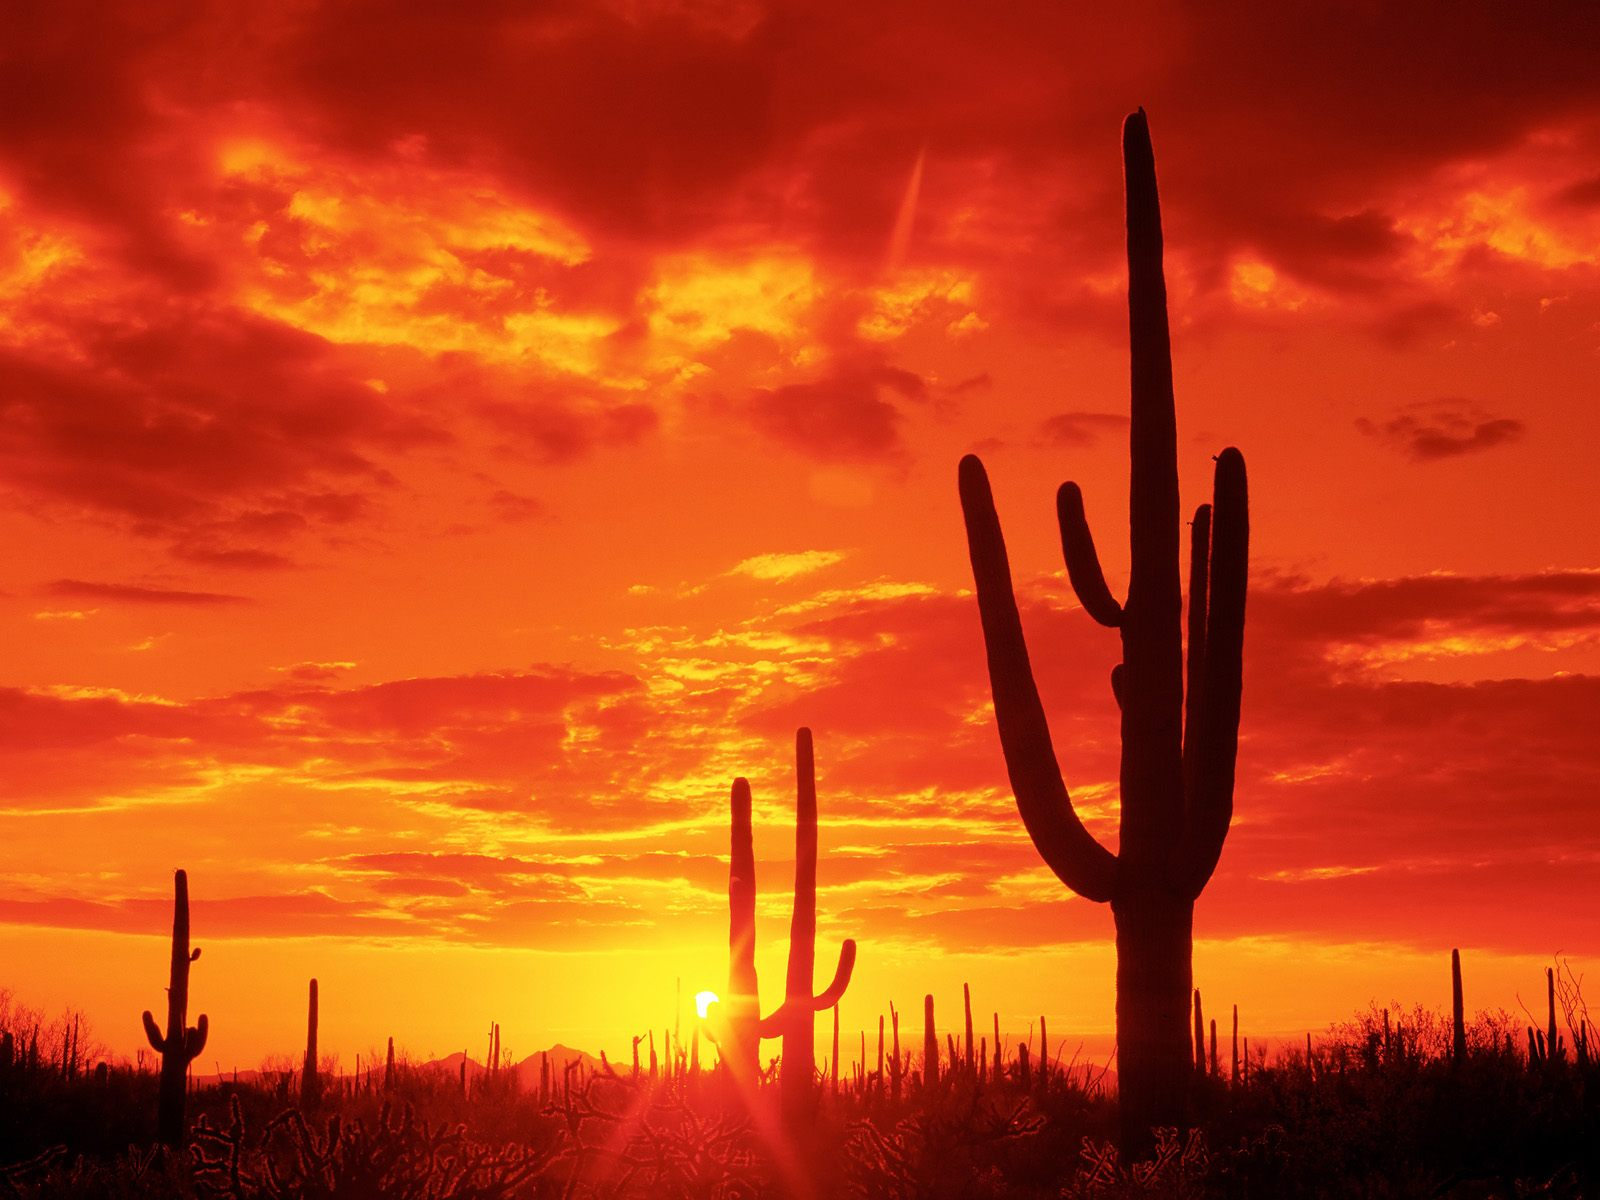 Burning-Sunset-Saguaro-National-Park-Arizona · TREE_FORGROUND_BACKGROUND_COLORFUL_SUNSET_Wallpaper_5zh6v